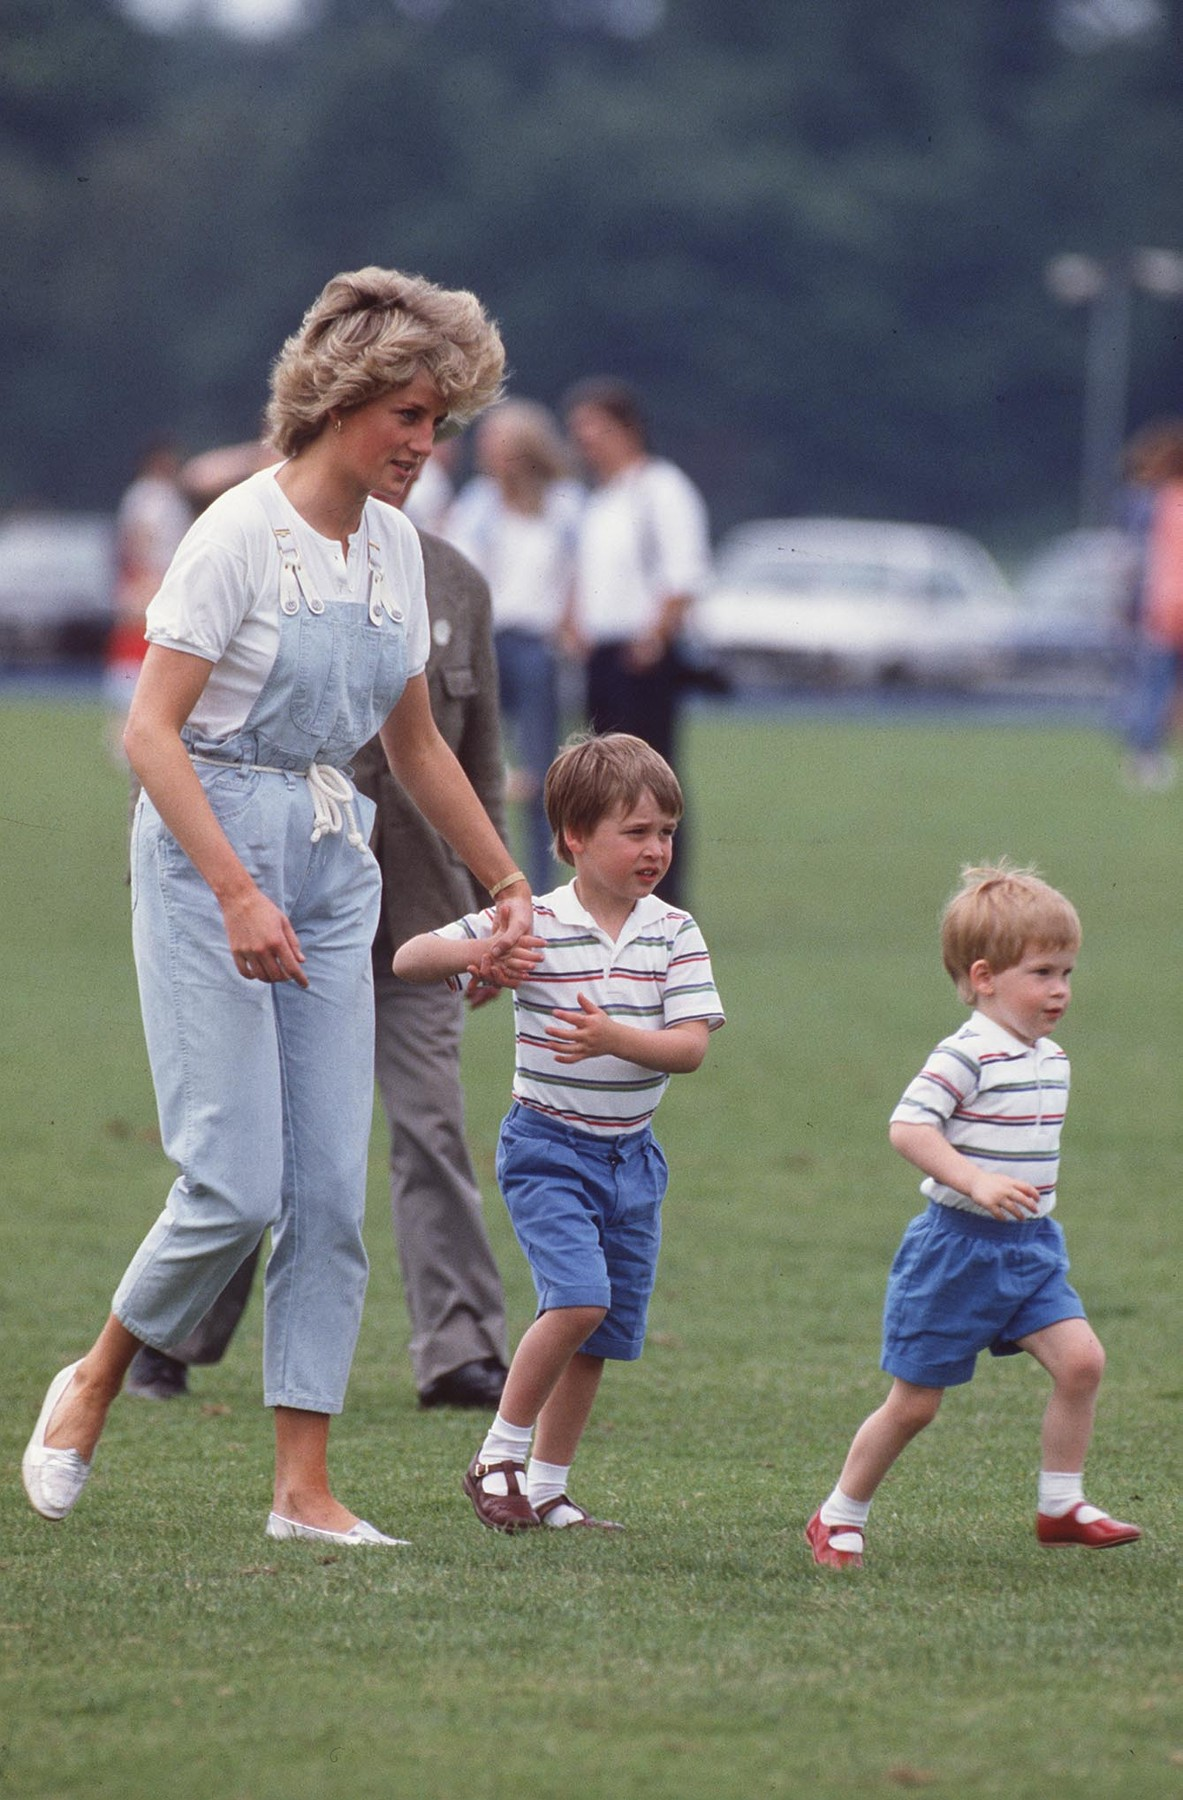 HRH PRINCESS OF WALES With her sons Left: HRH PRINCE WILLIAM and Right: HRH PRINCE HARRY at Smith's Lawn, Windsor,Image: 22089128, License: Rights-managed, Restrictions: For queries call UPPA + 44 (0)20 7421 6000, Model Release: yes, Credit line: UPPA/Photoshot / Avalon Editorial / Profimedia